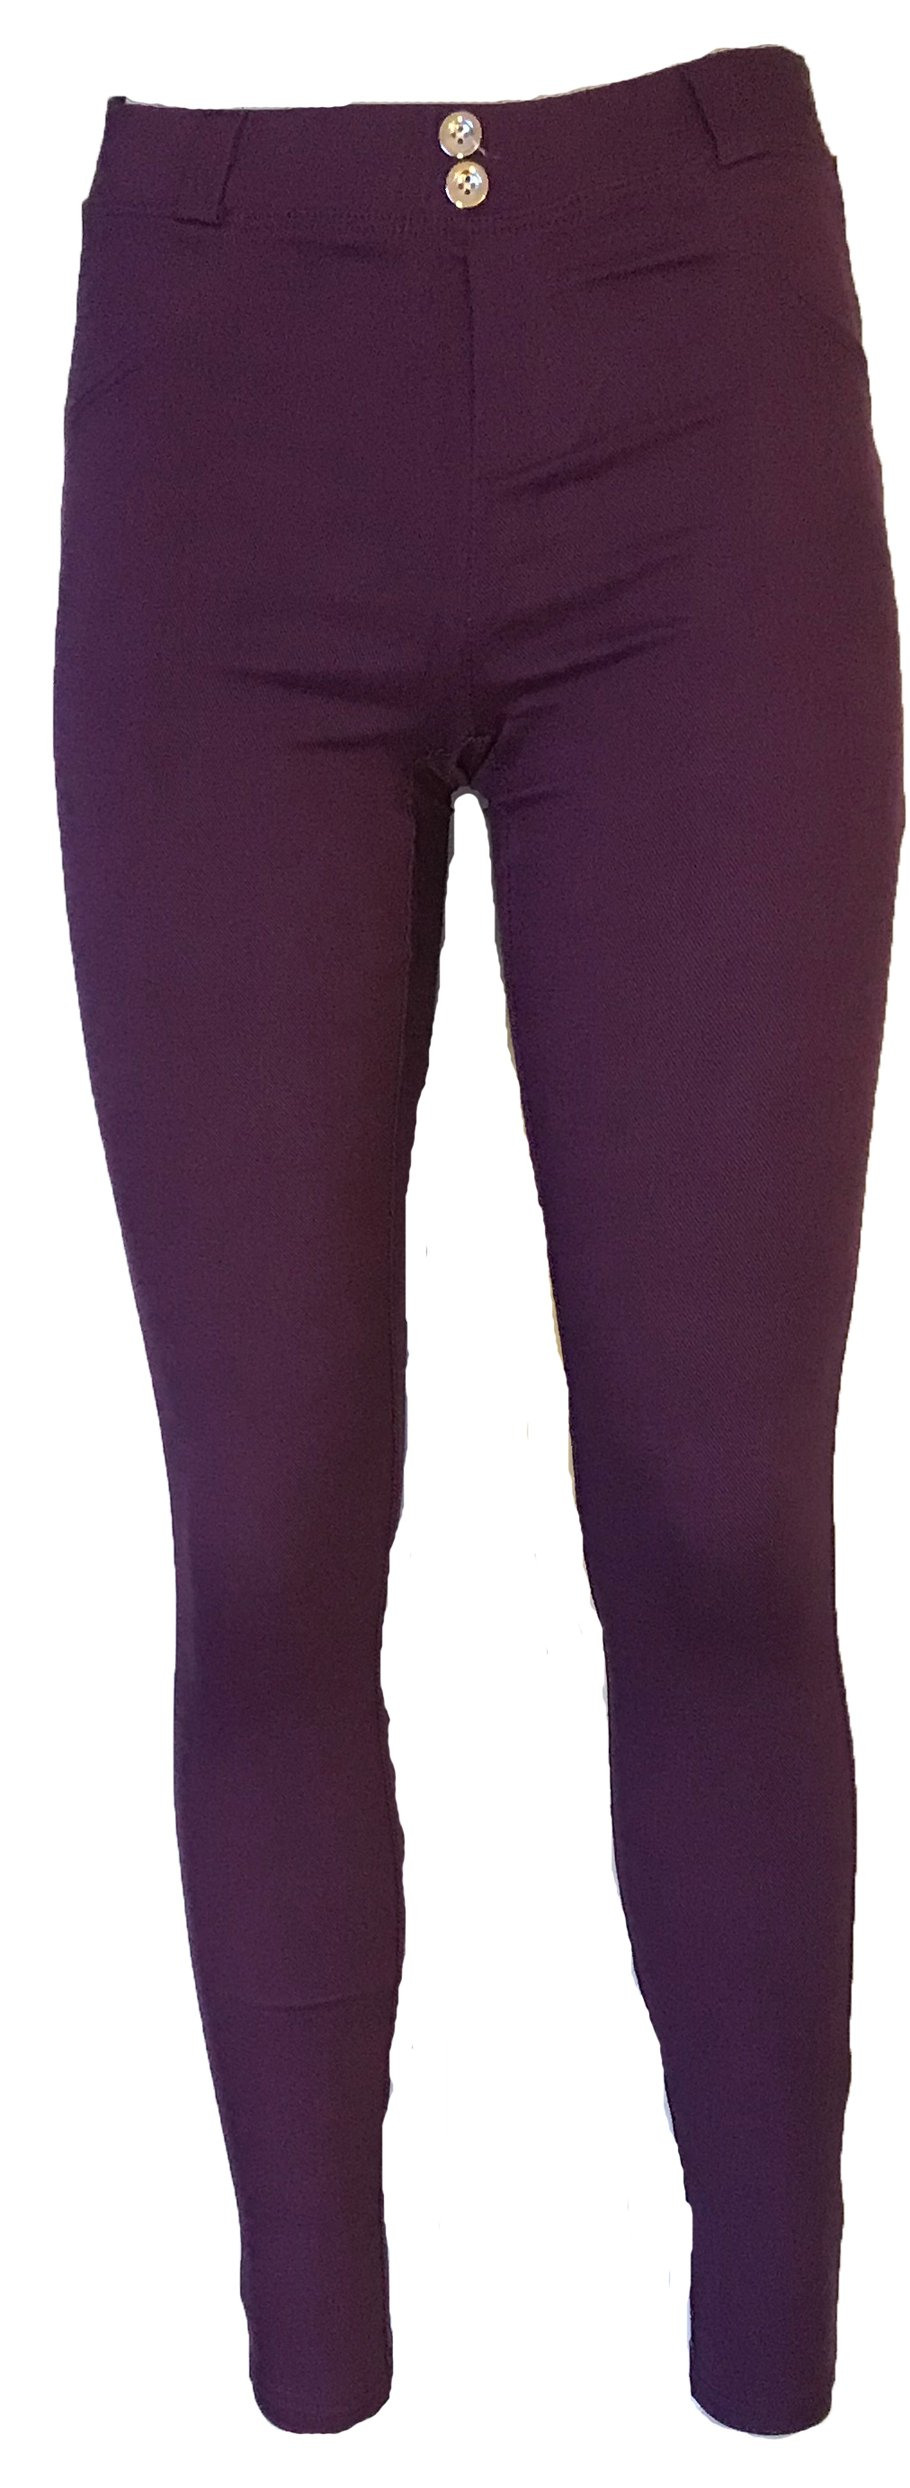 Stretch Leggings Jeggings i 4 färger